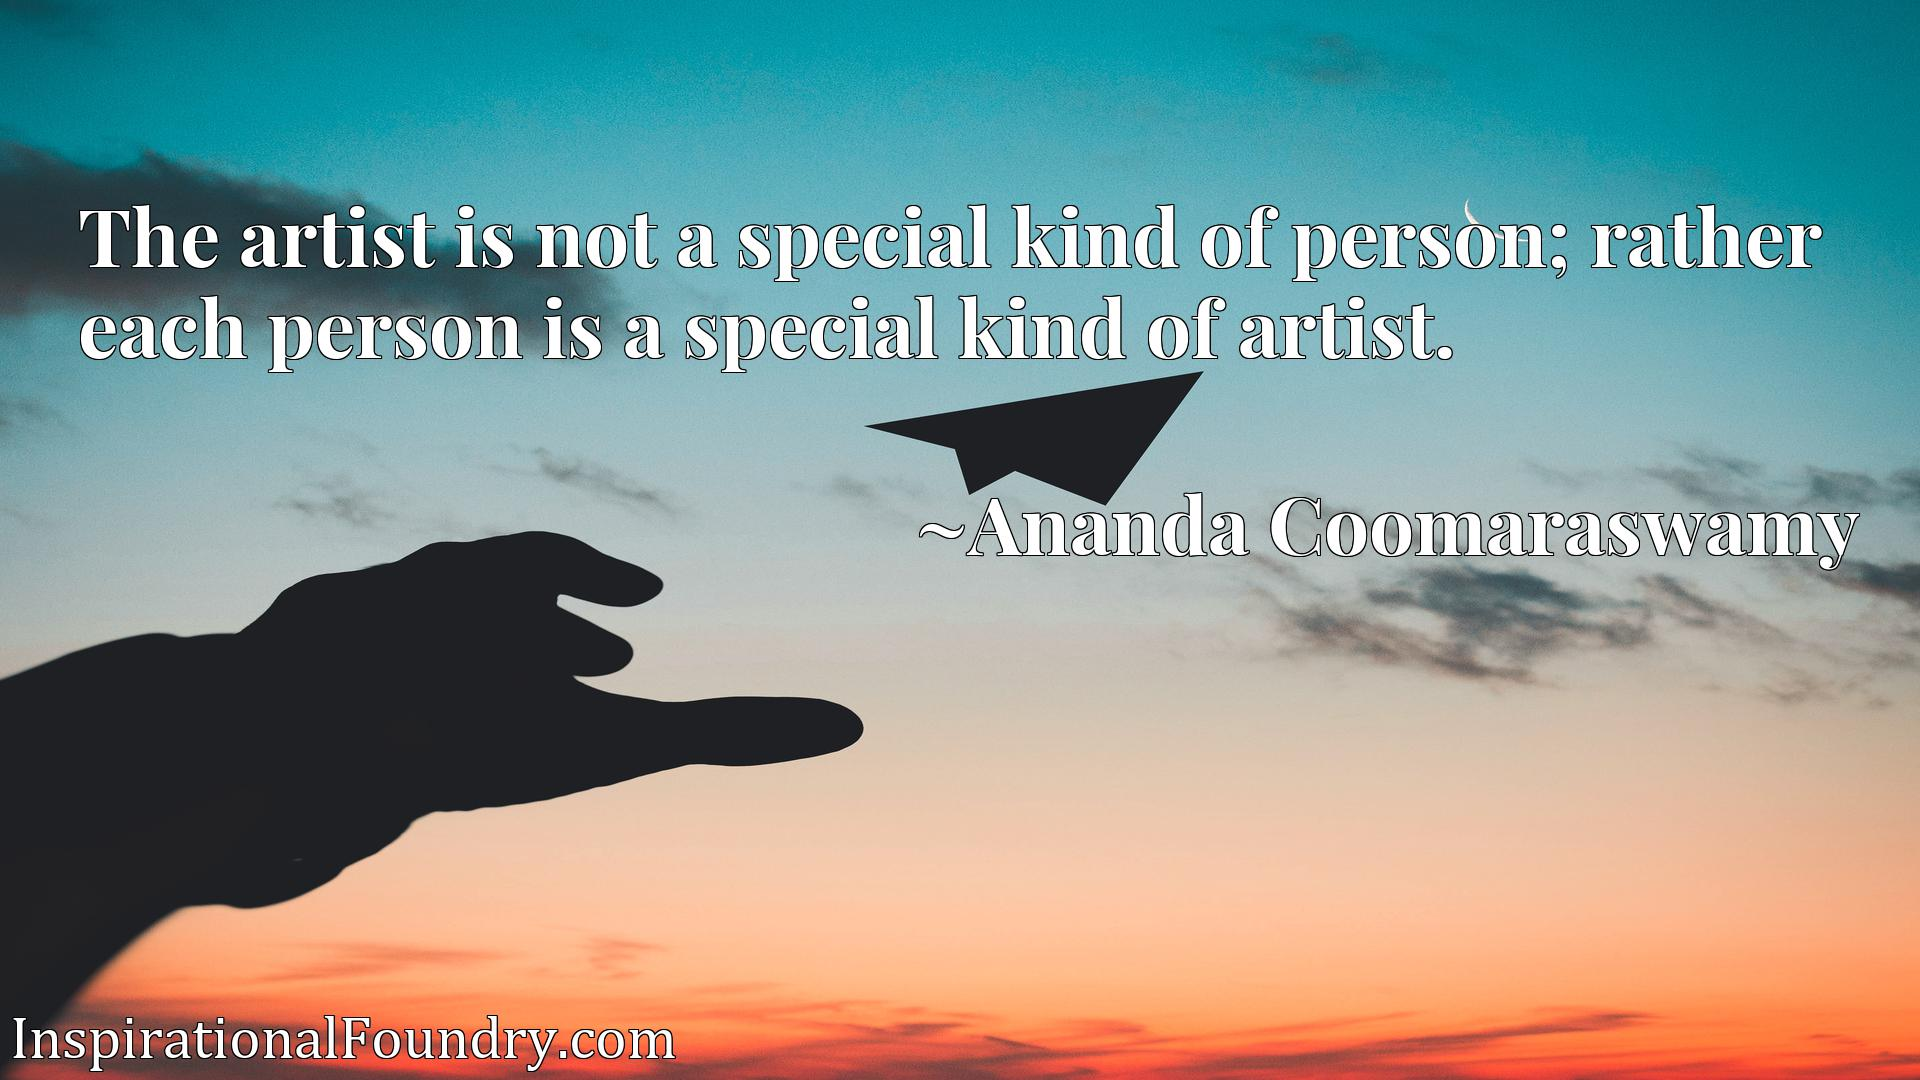 The artist is not a special kind of person; rather each person is a special kind of artist.